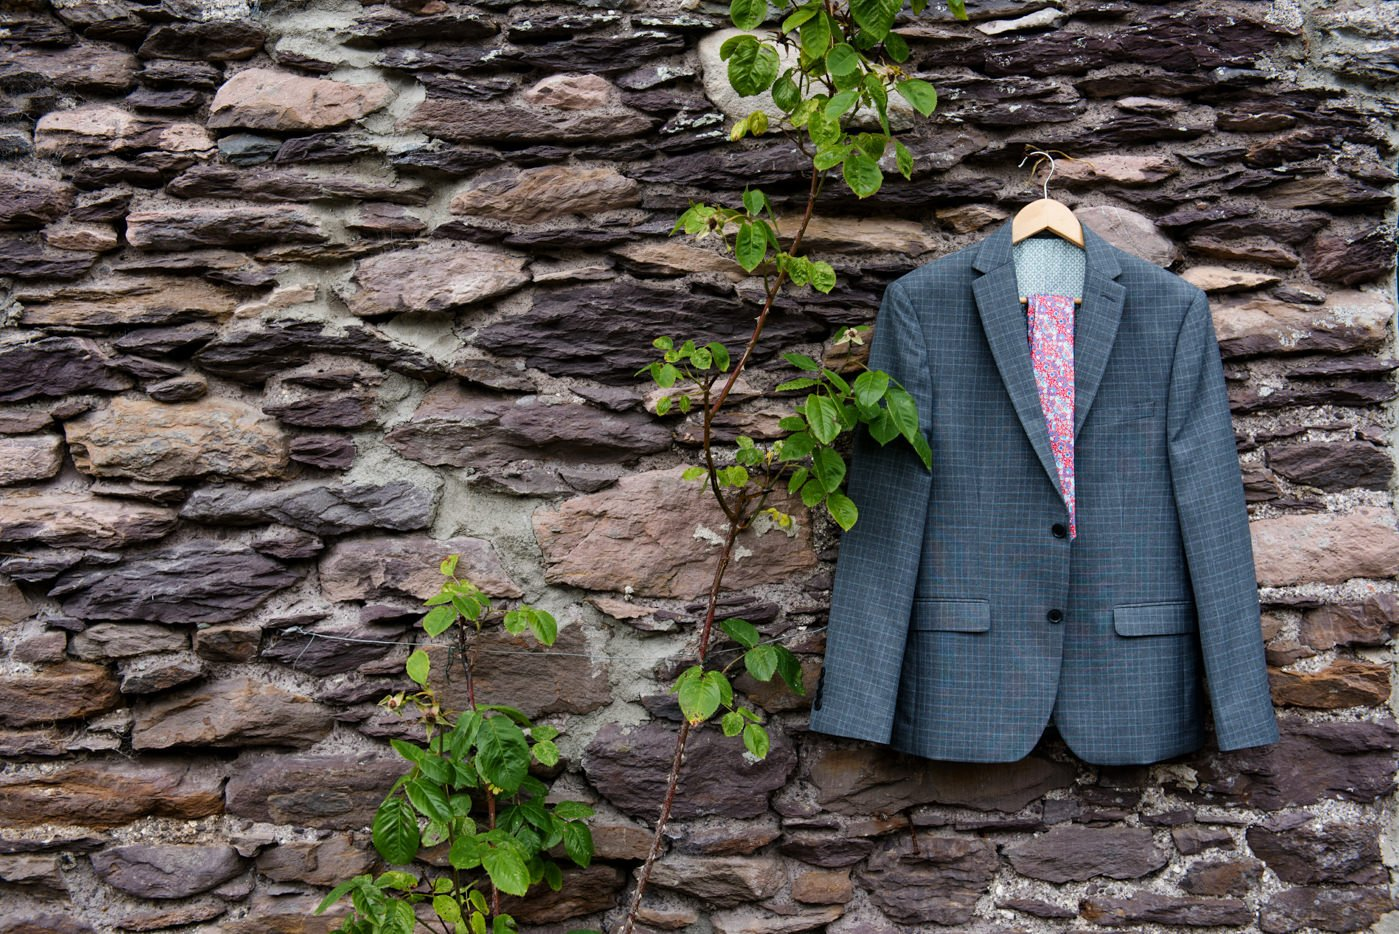 Suit hanging pre-wedding photography Co Kerry Ireland